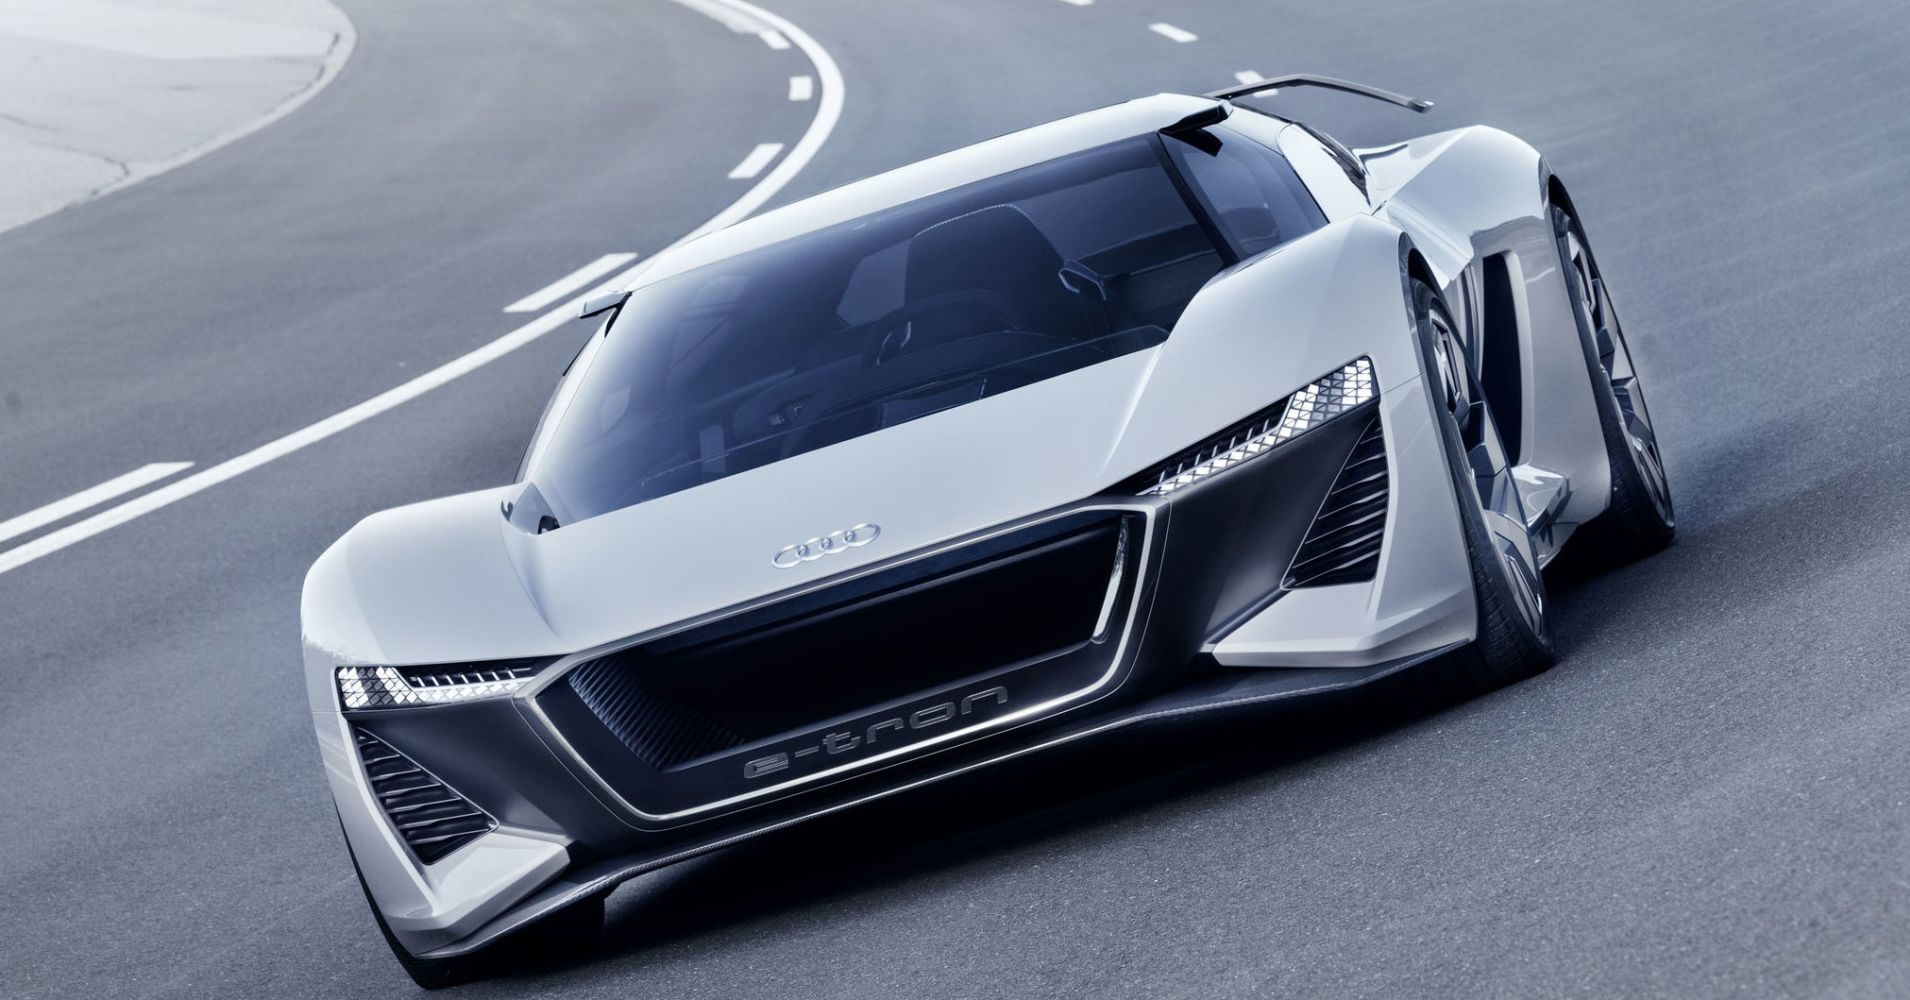 Audi Just Put Tesla On Notice Unveiling An Electric Supercar Prototype That Can Go From 0 To 60 In 2 Seconds Usa Today Reports But Don T Super Cars Audi Car